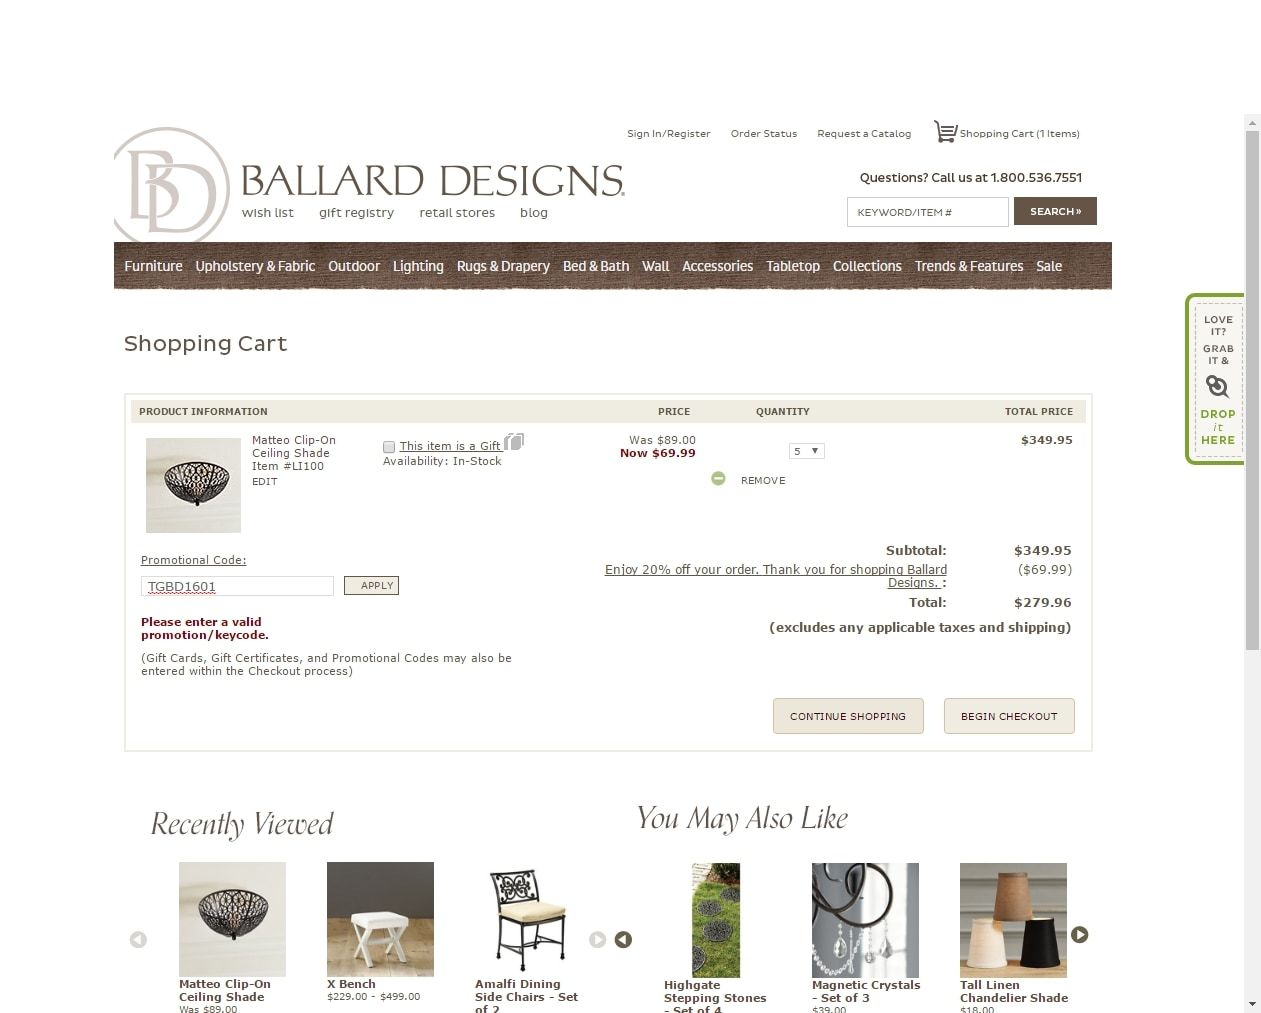 Code Tgbd The Promo Field You Should Ballard Design Target Home Decor Designs Codes Coupons Untitled Promotion New White Prepac Large